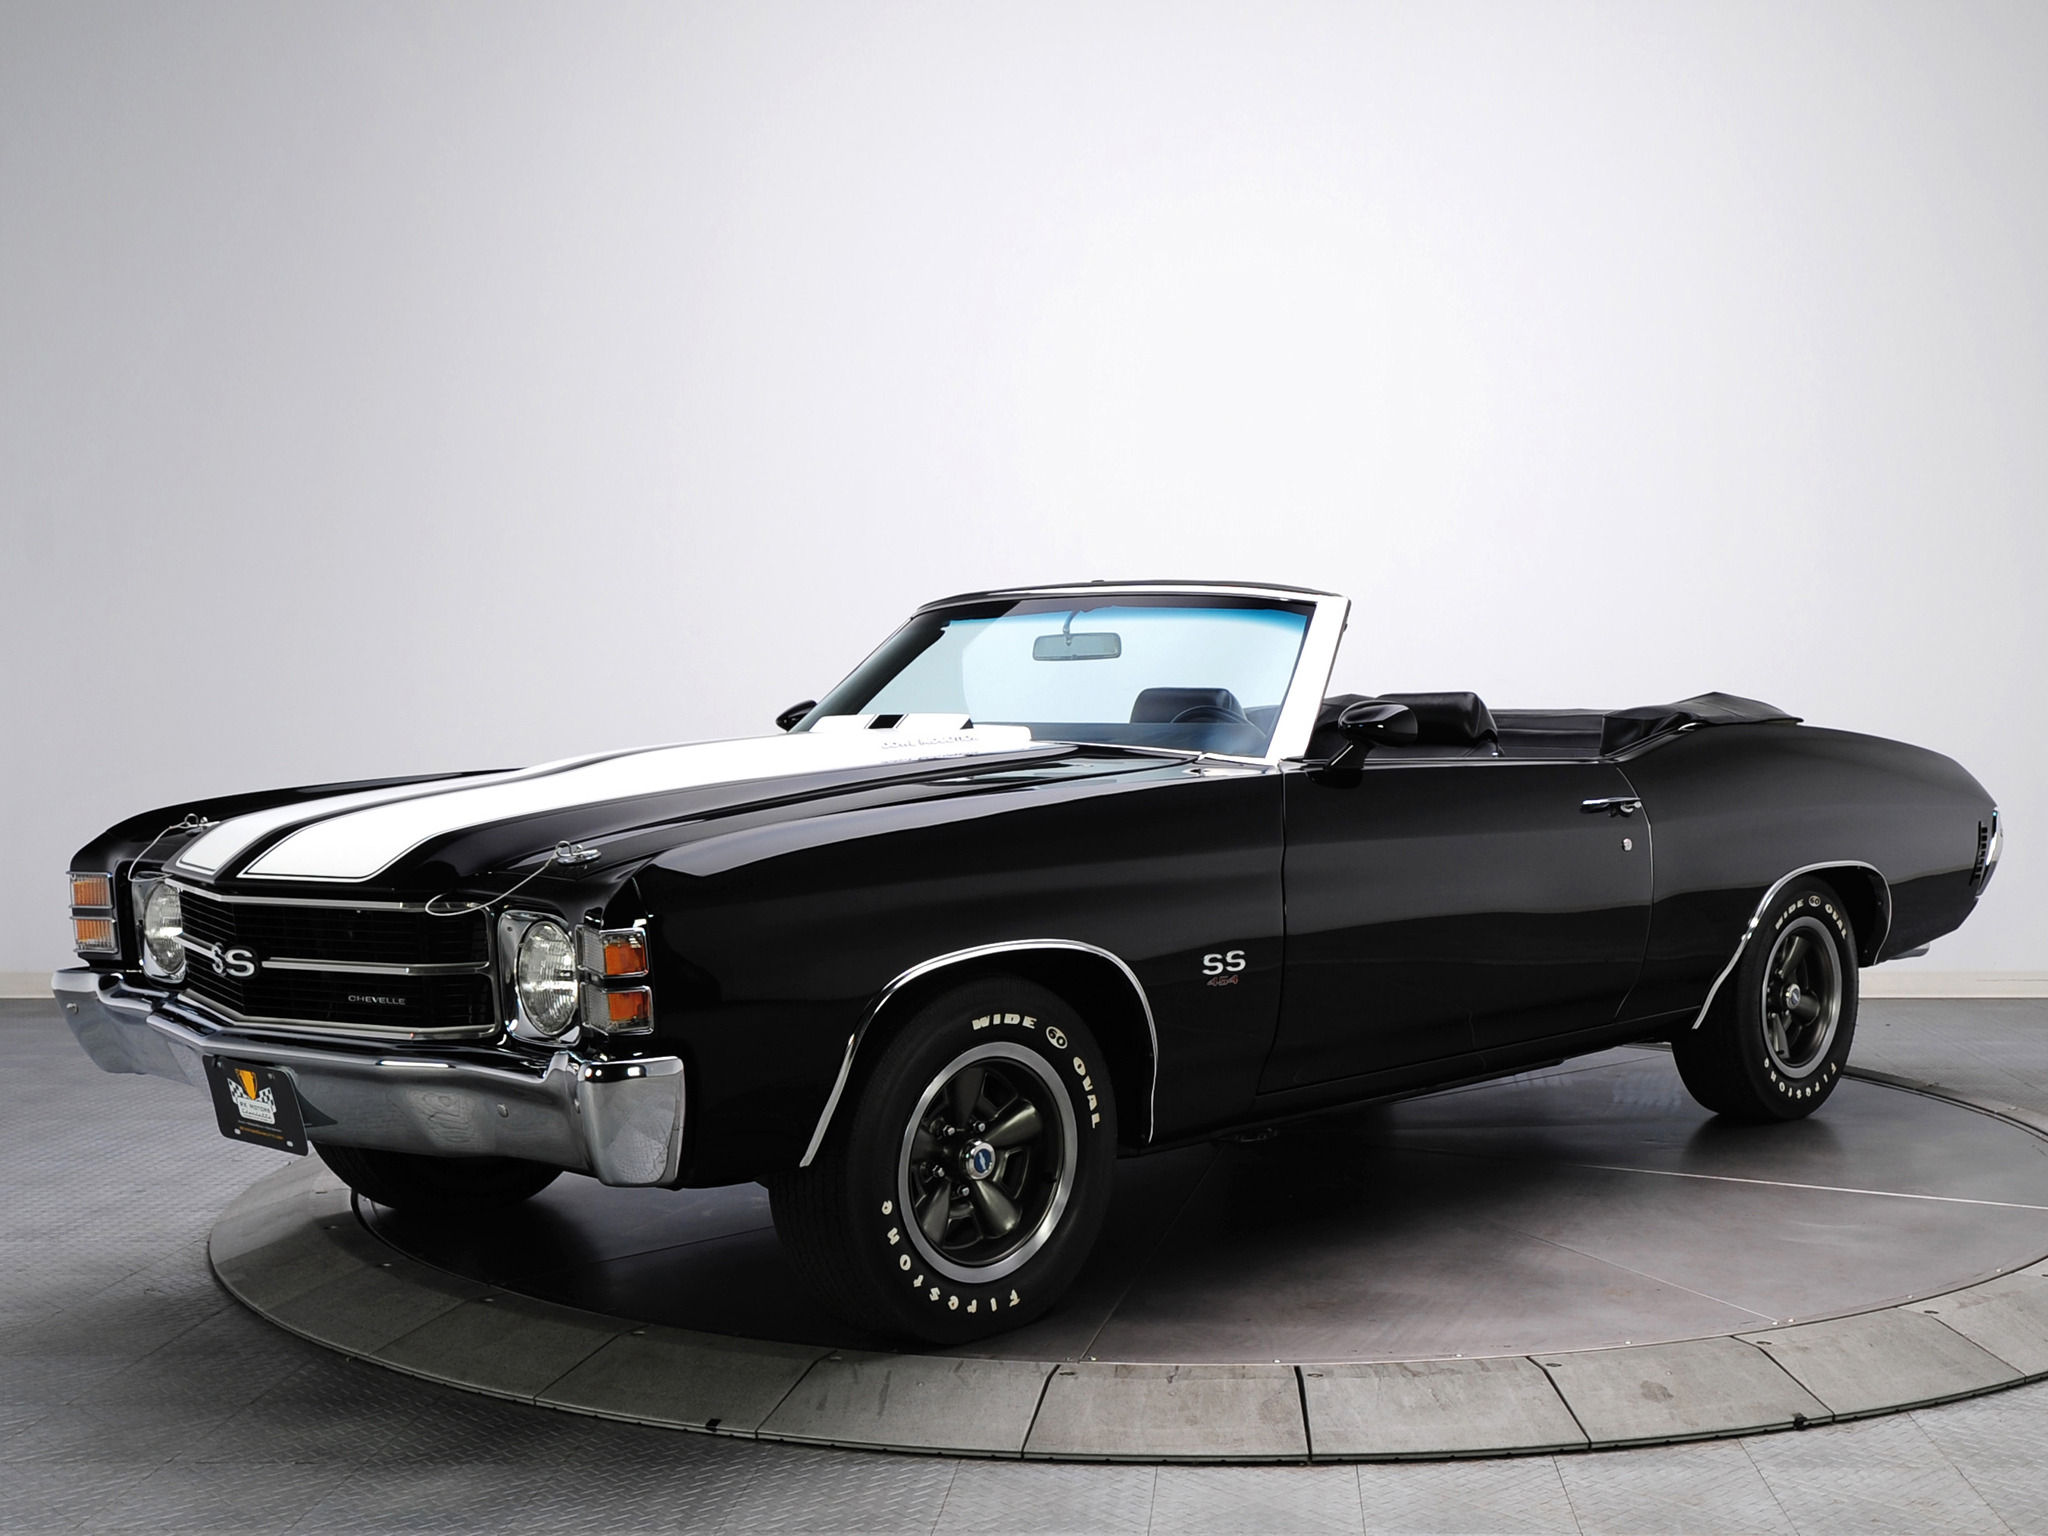 Chevrolet Chevelle Ss 454 Photos Photogallery With 20 Pics